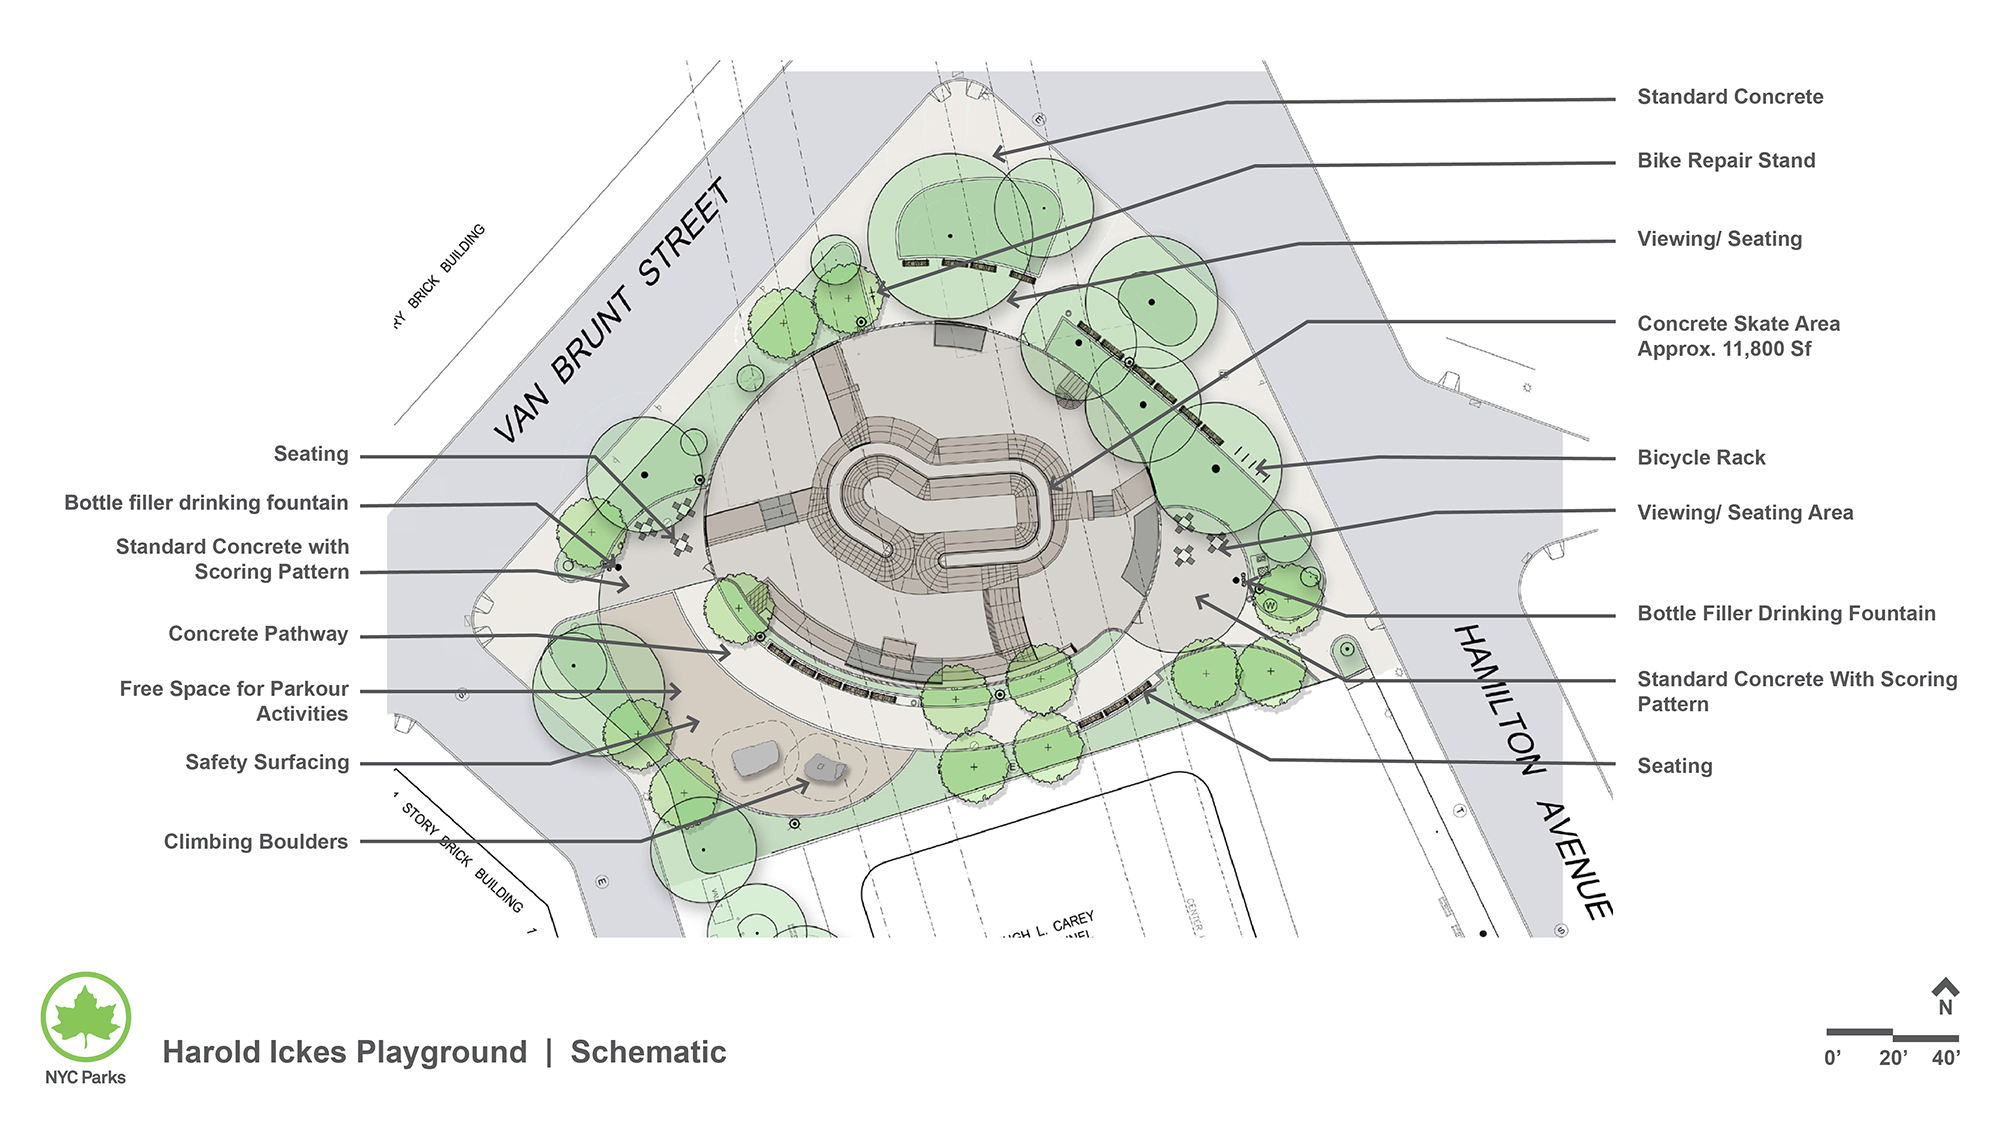 Design of Harold Ickes Playground BMX Bike & Skate Park and Multipurpose Play Area Construction